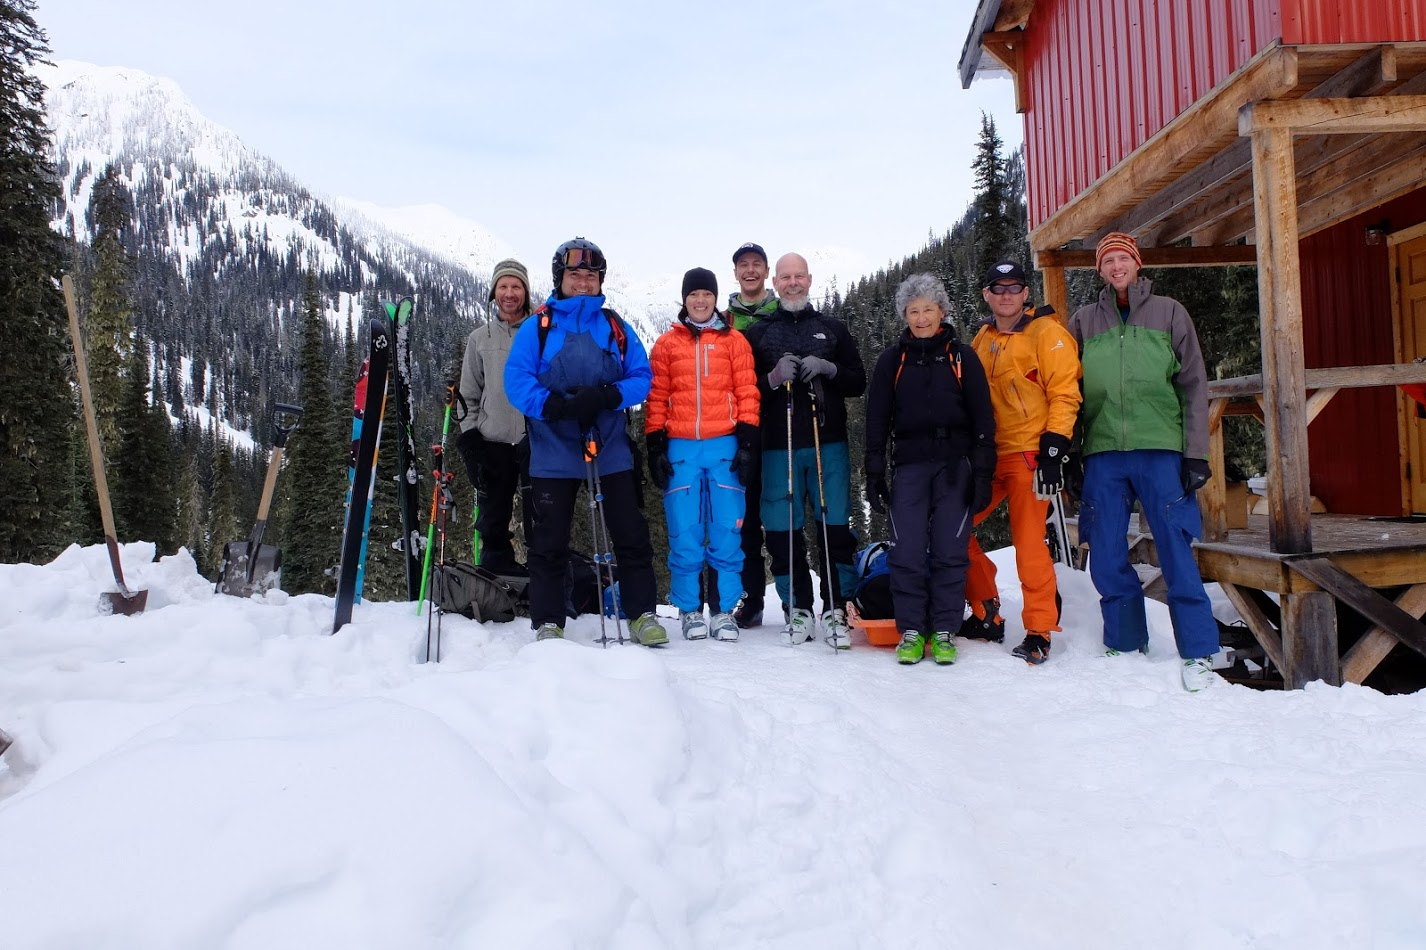 The group outside the hut